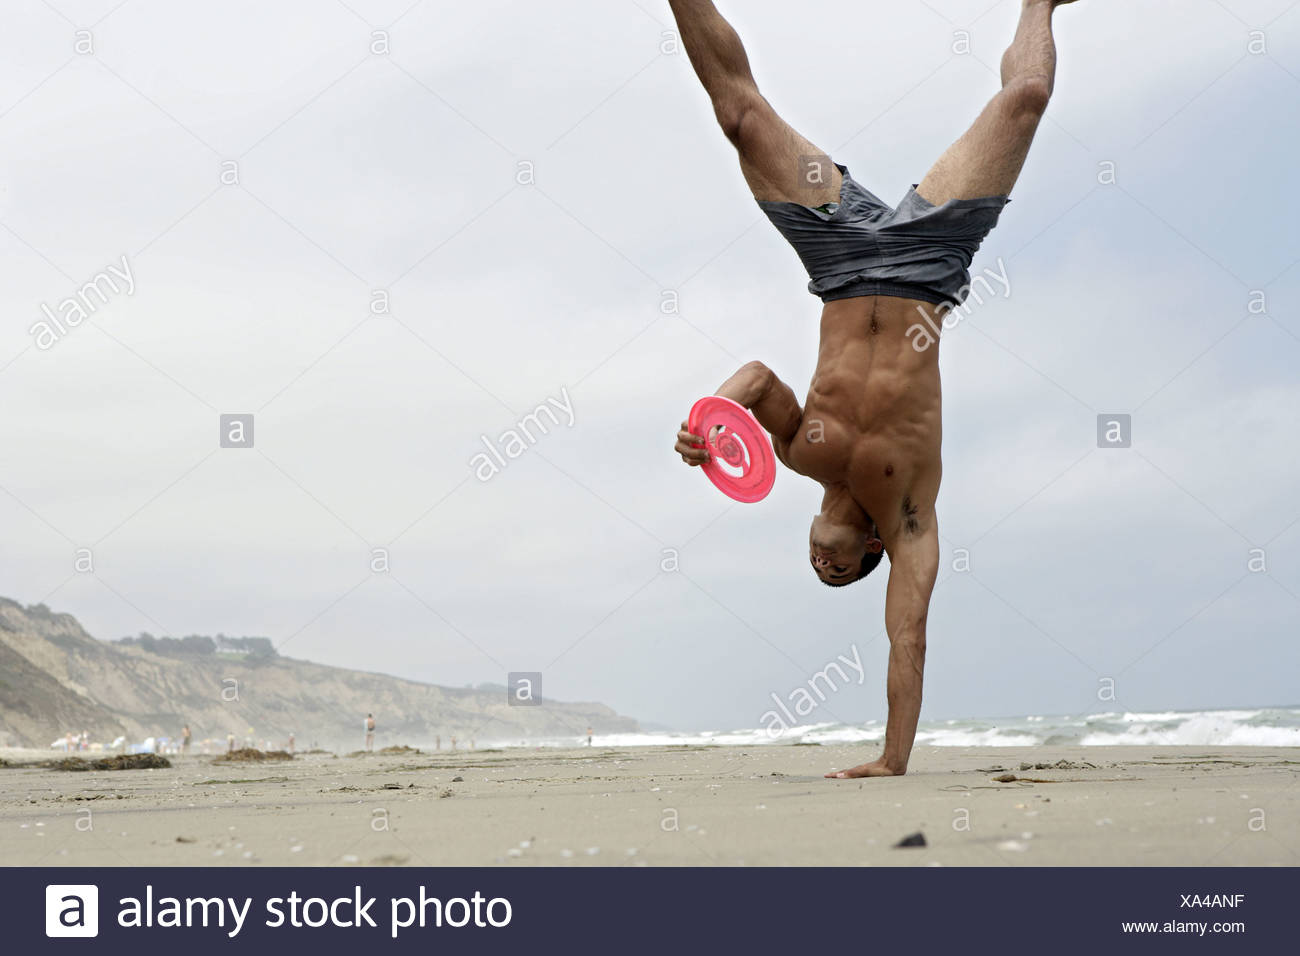 A person performs gymnastic on a beach. Stock Photo